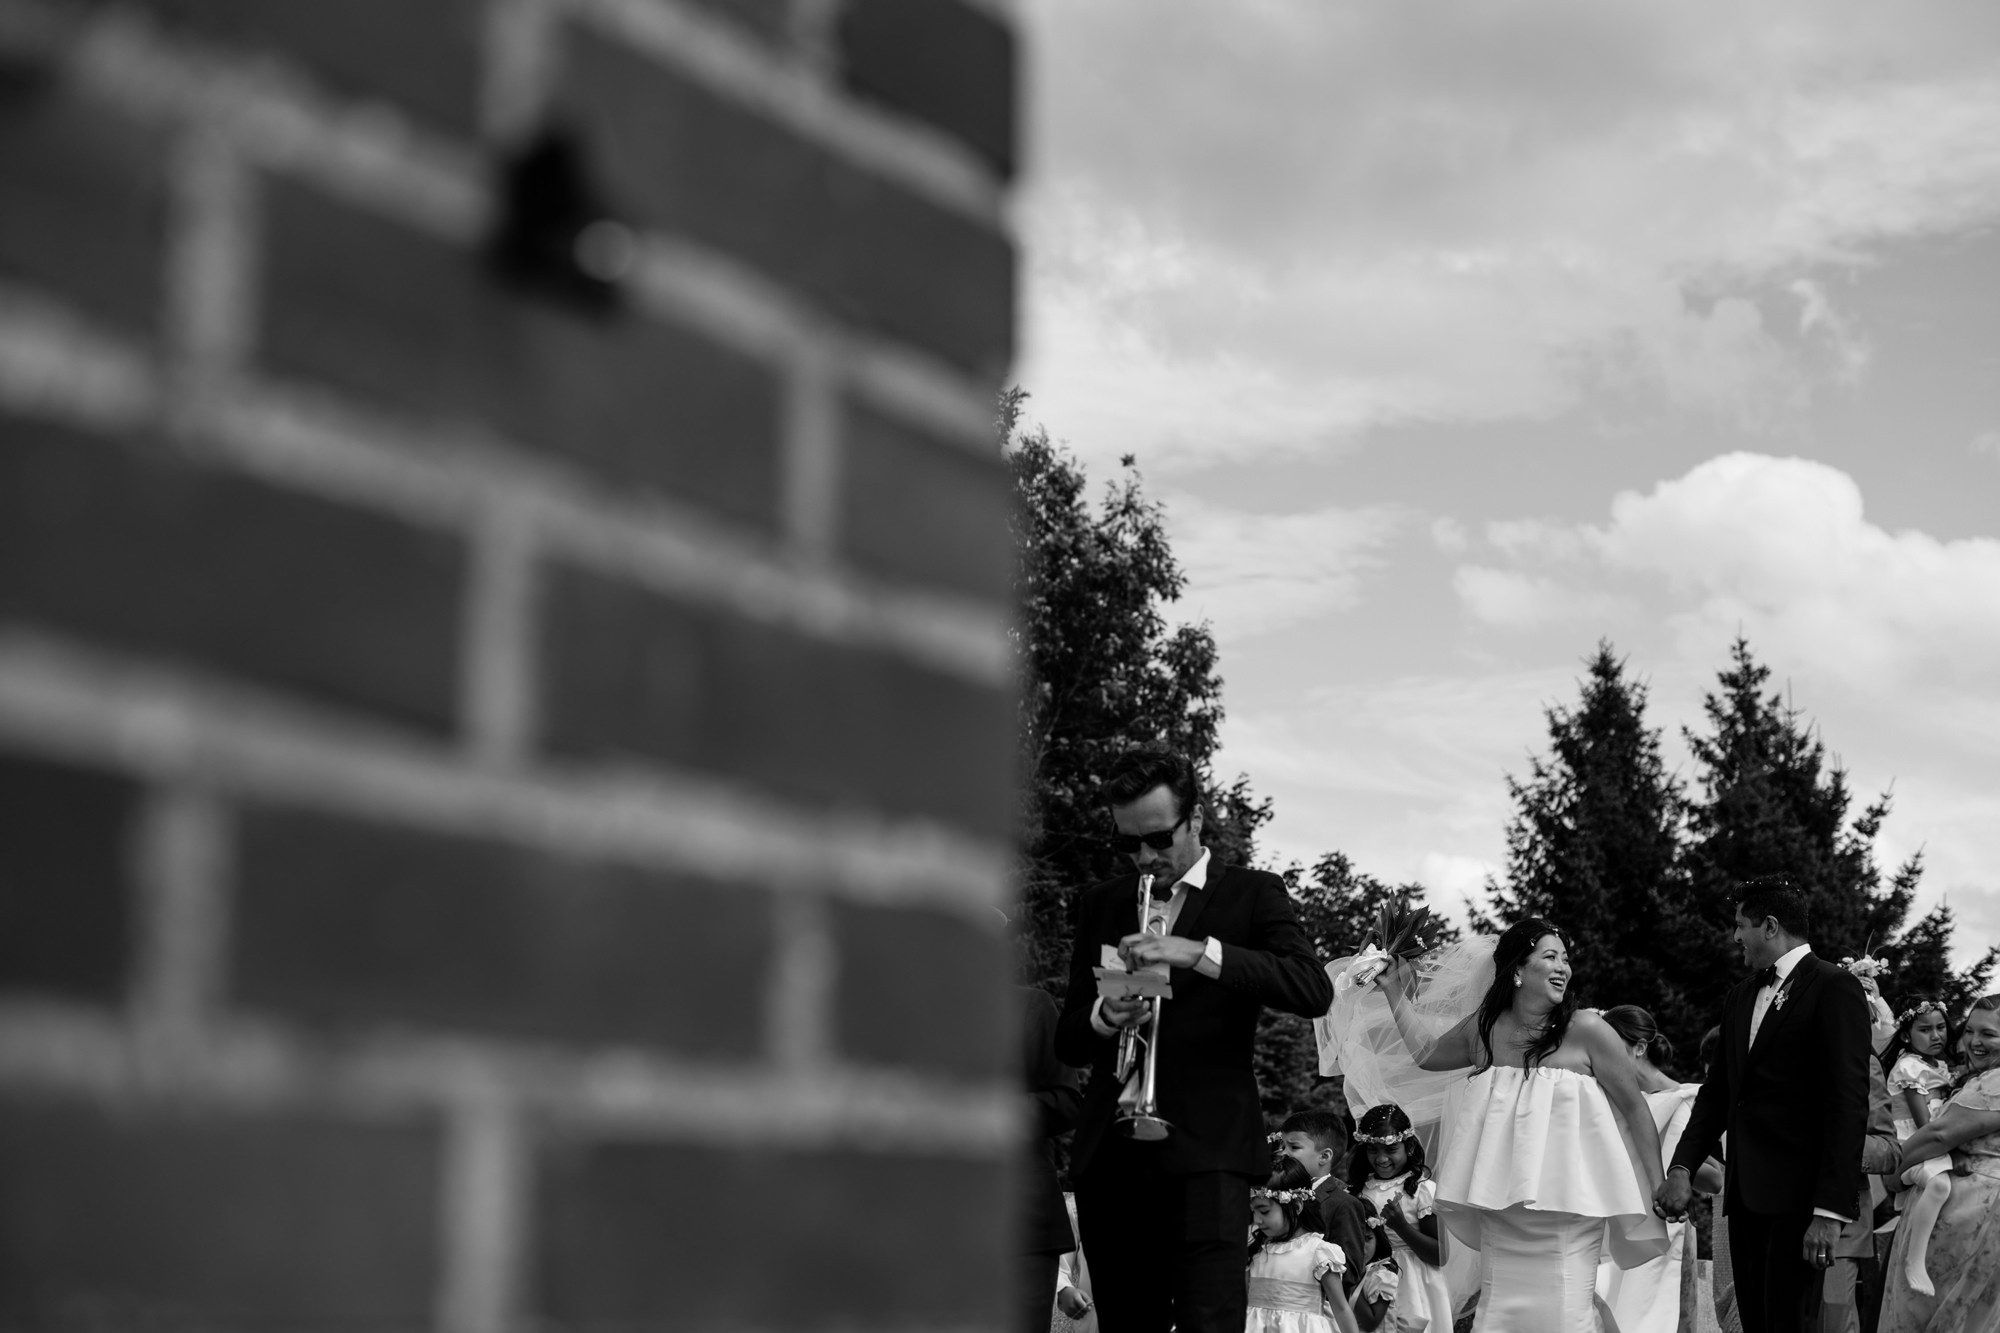 Bride and groom walking with wedding party, by Thierry Joubert